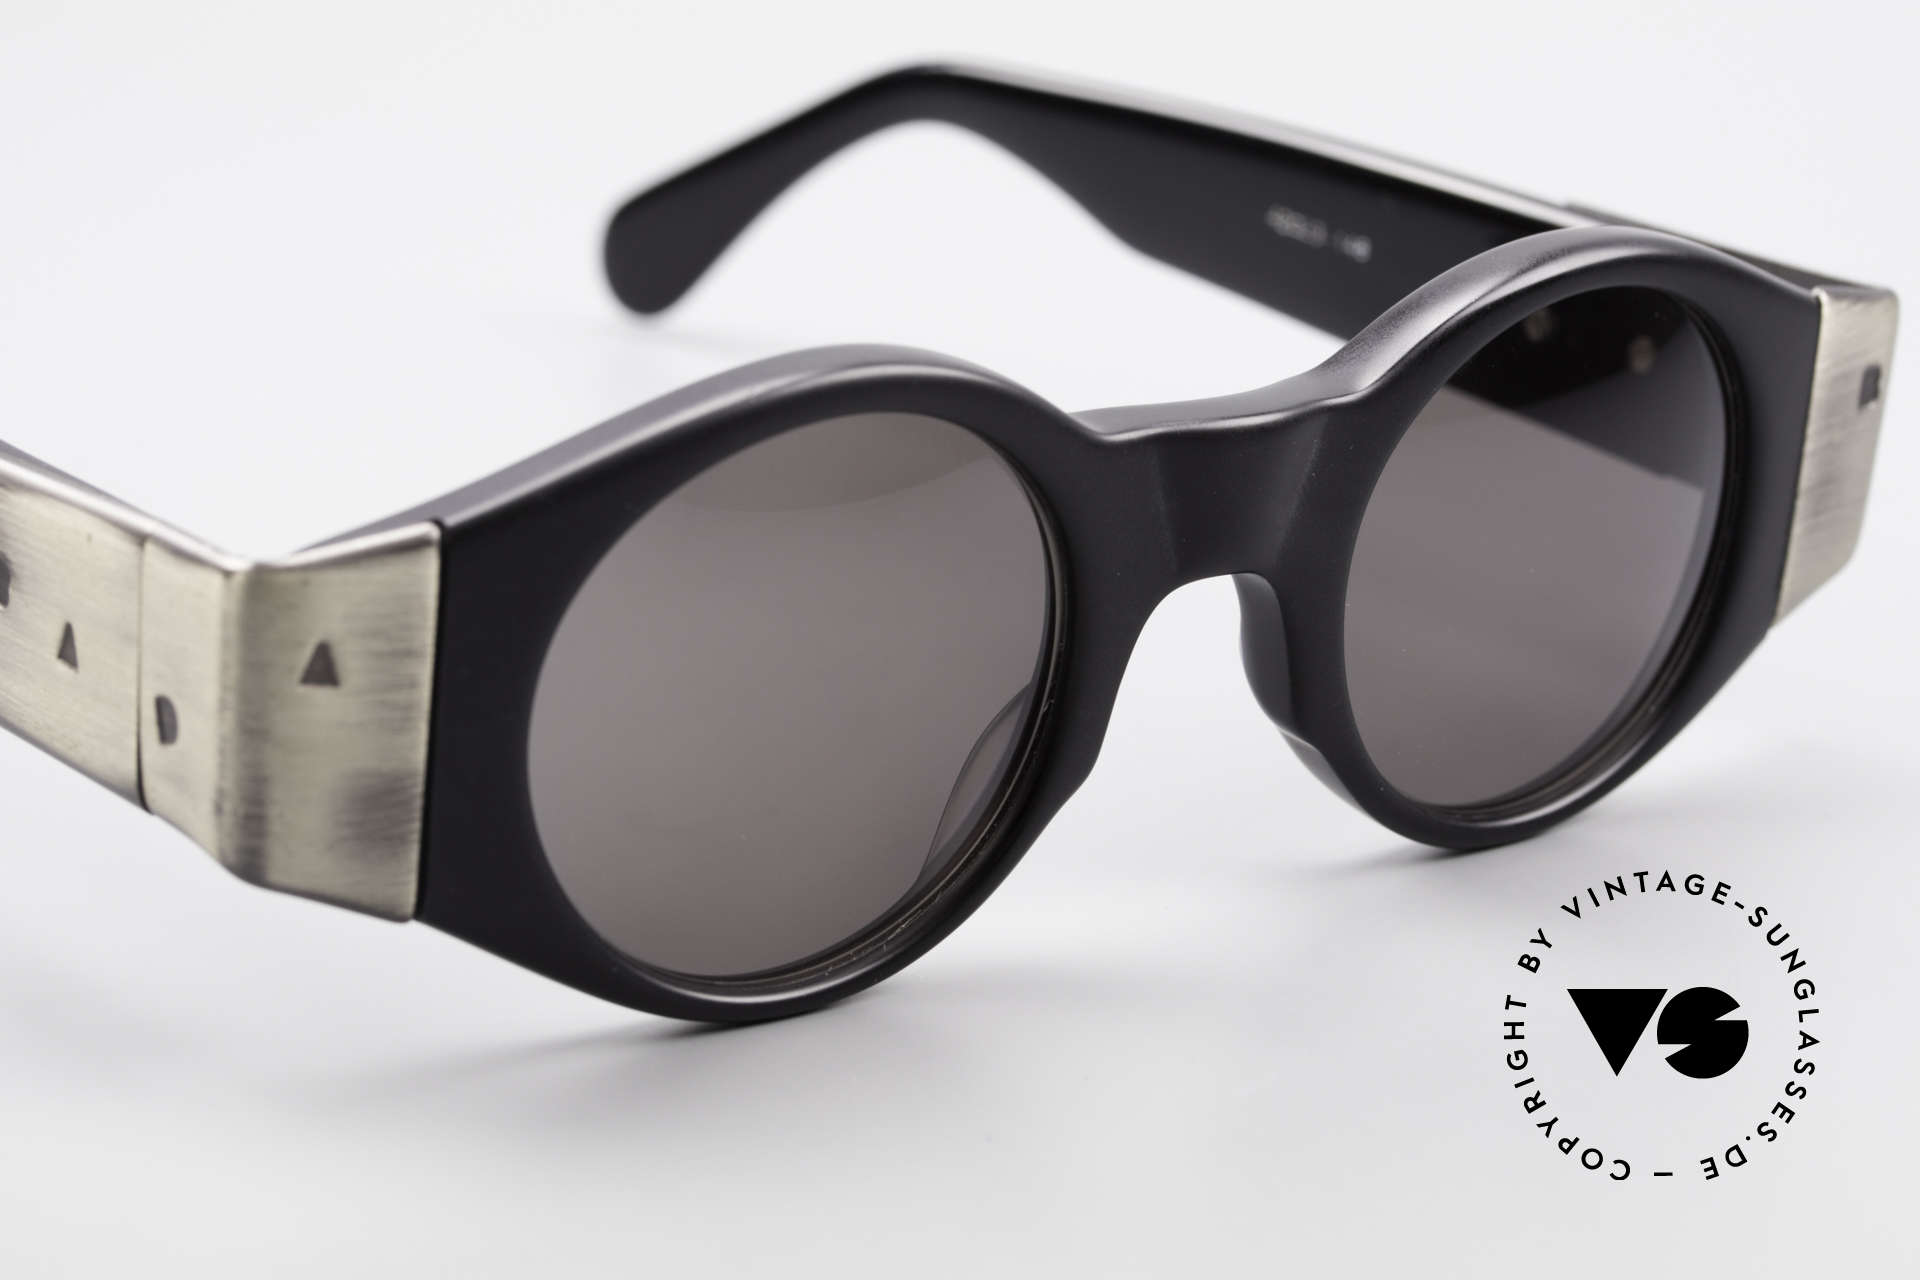 Bada BL686 Rare High End 90's Sunglasses, NO RETRO fashion-shades, but a unique old ORIGINAL, Made for Men and Women